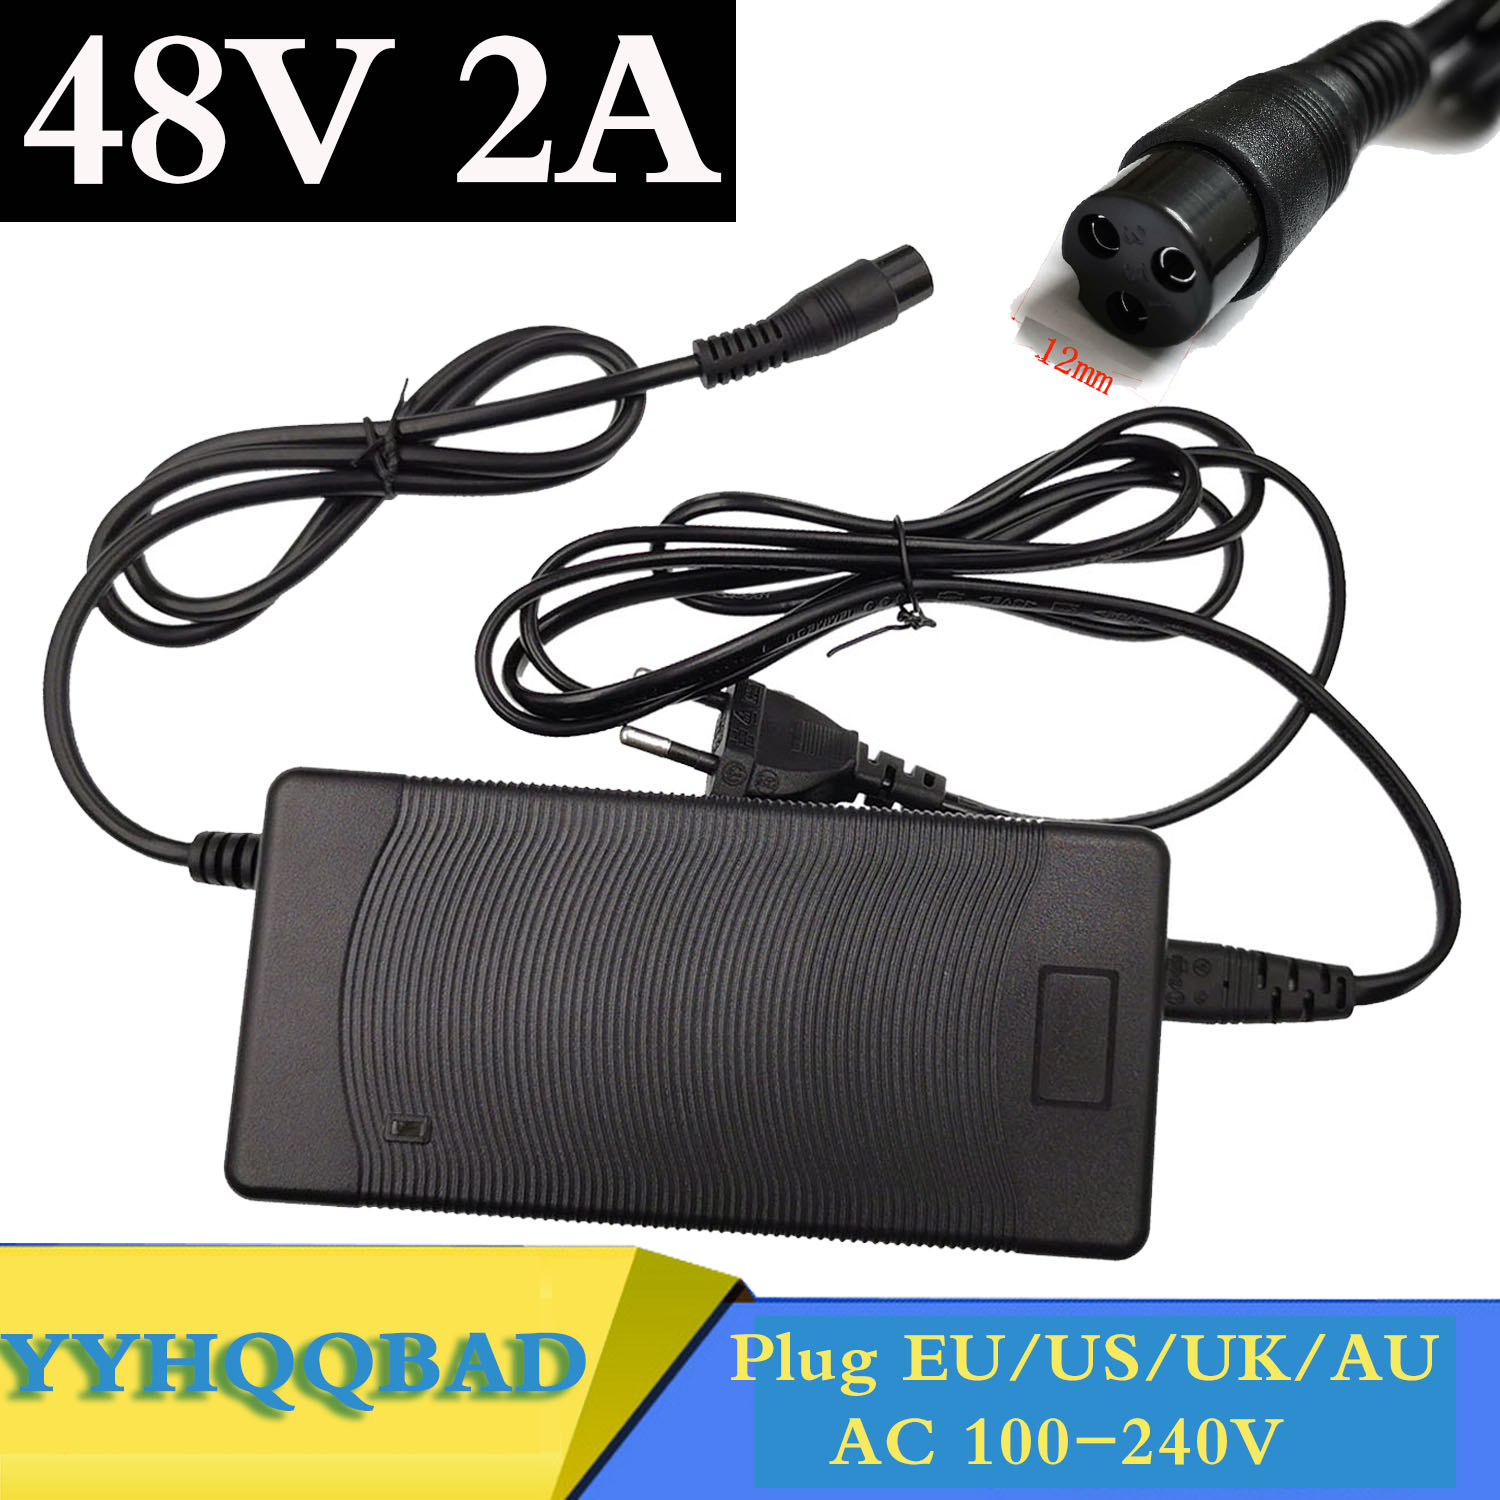 48V 2A Lead acid Battery Charger for 57 6V Lead acid Battery Electric Bicycle Bike Scooters Motorcycle Charger 3P GX16 Plug